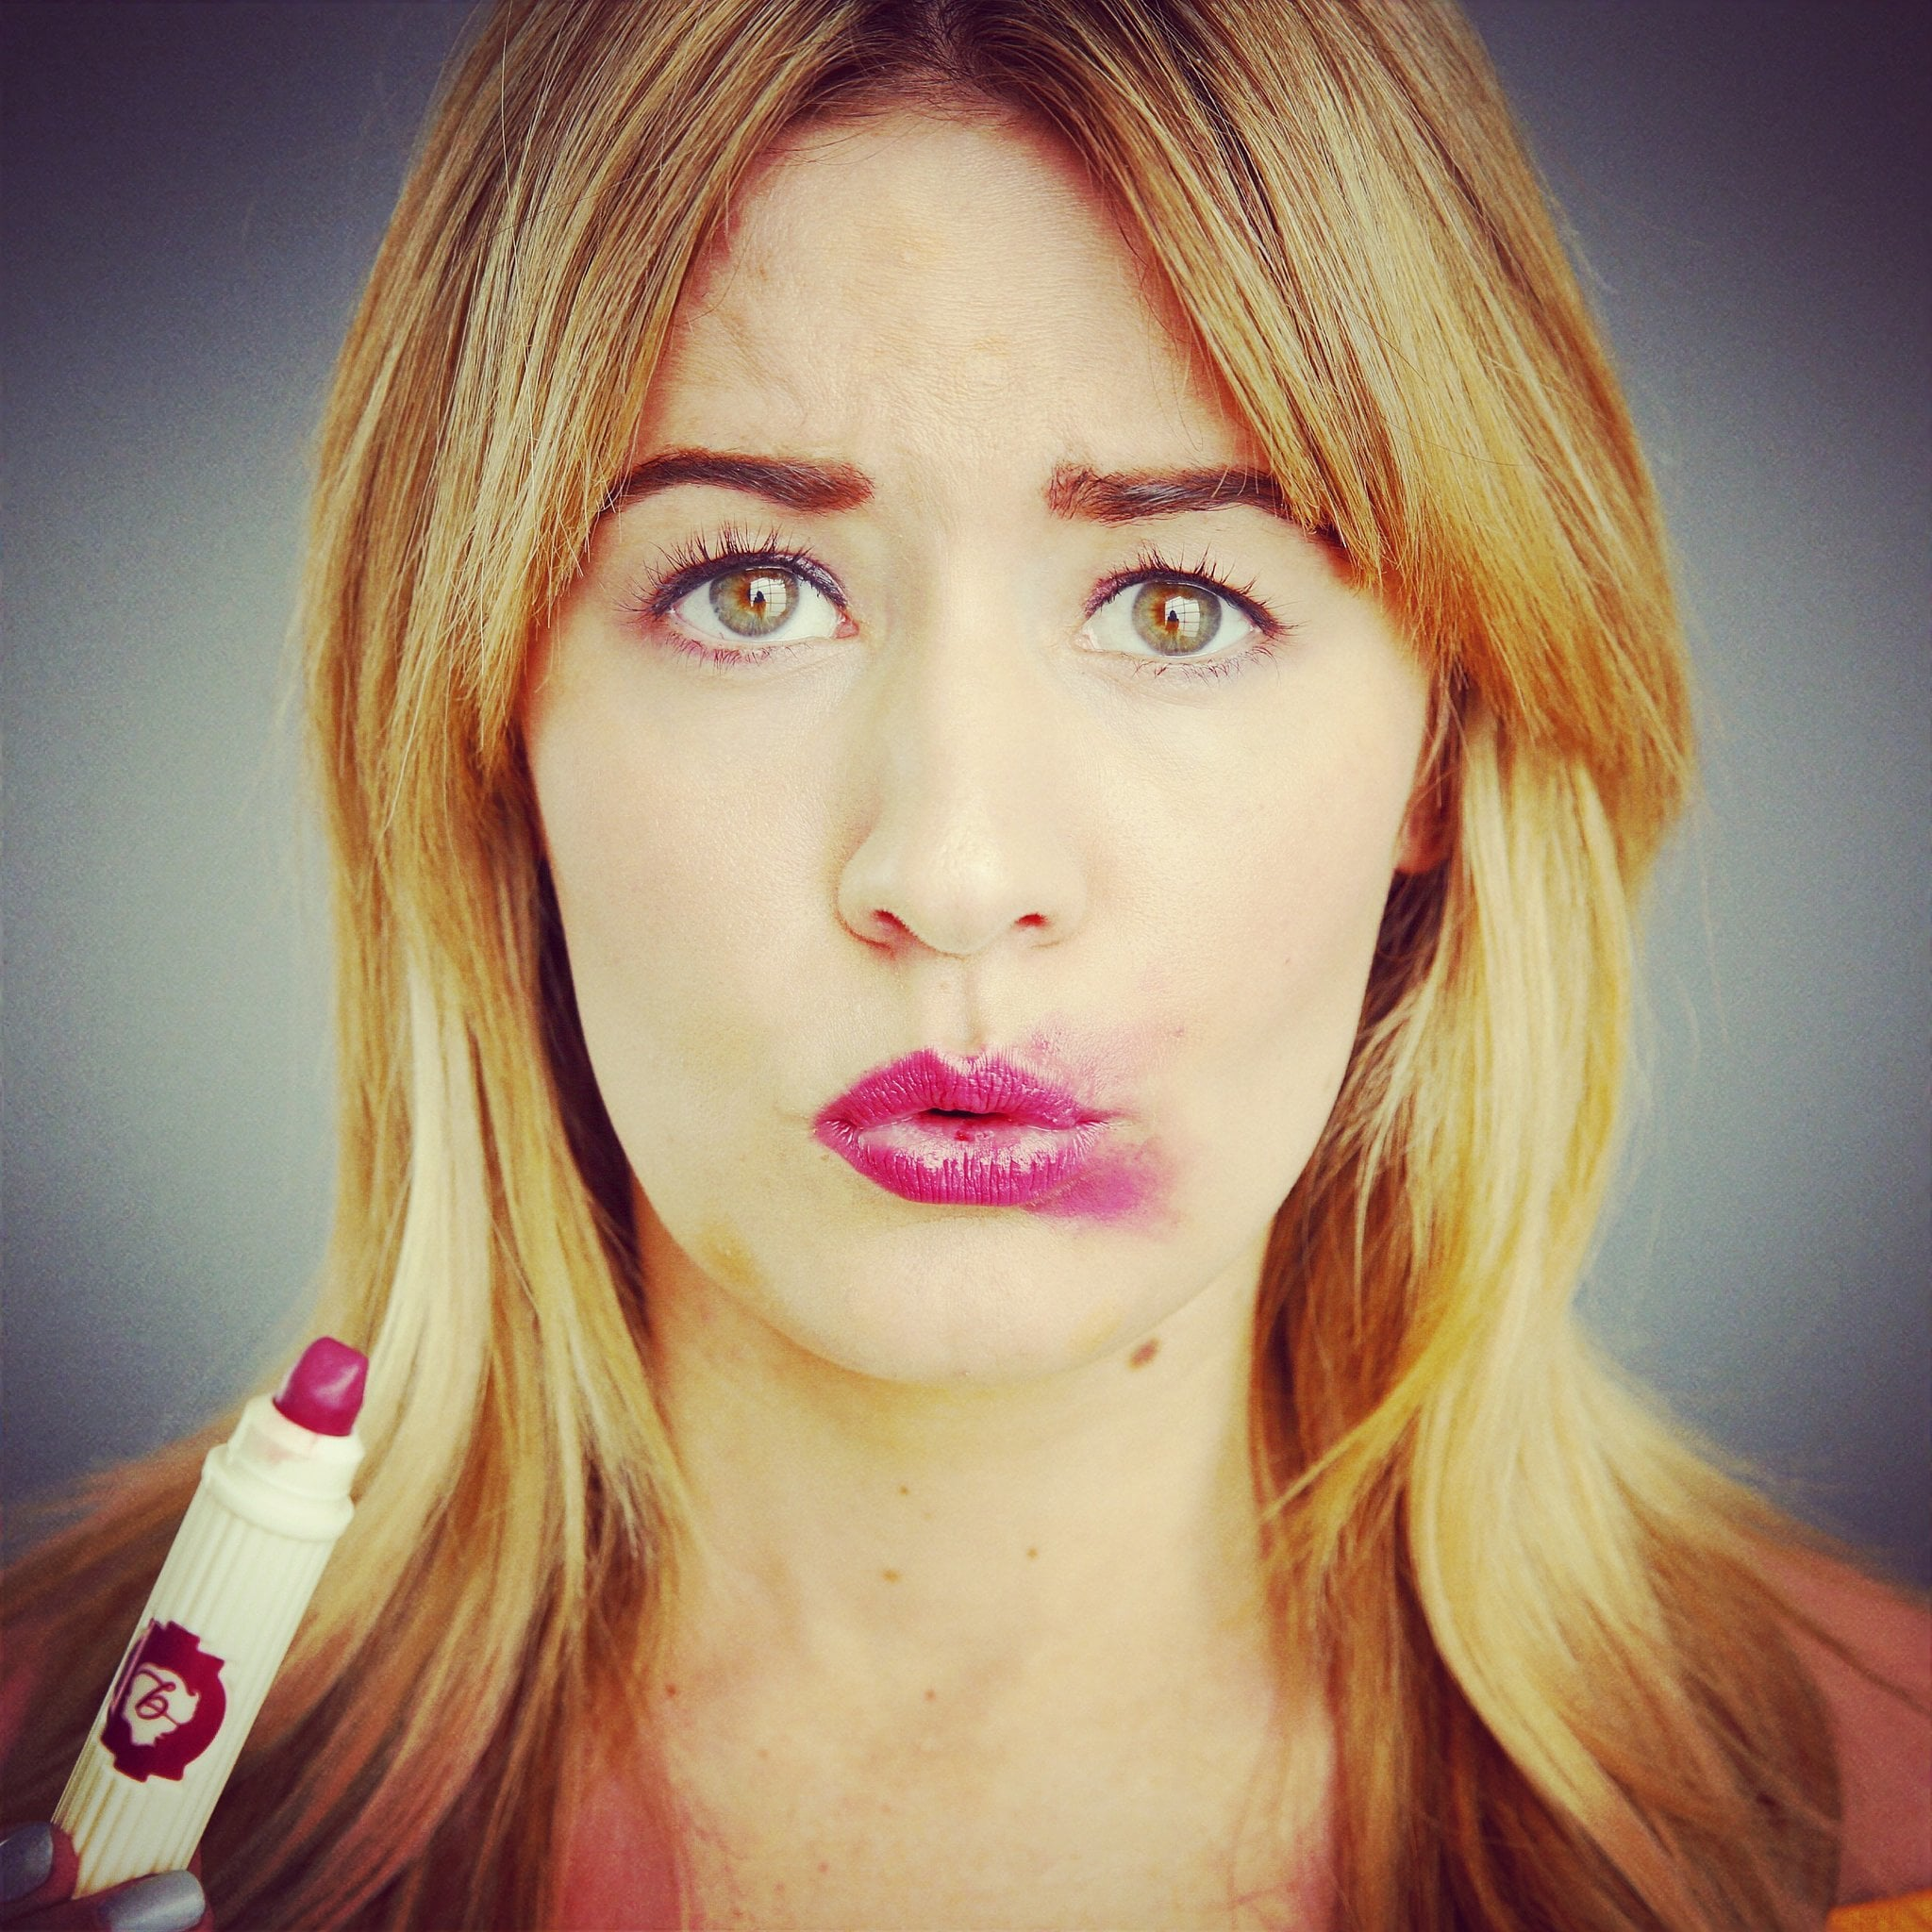 photo SmearforSmear: A New Campaign Reminds Us Of The Importance Of A Smear Test